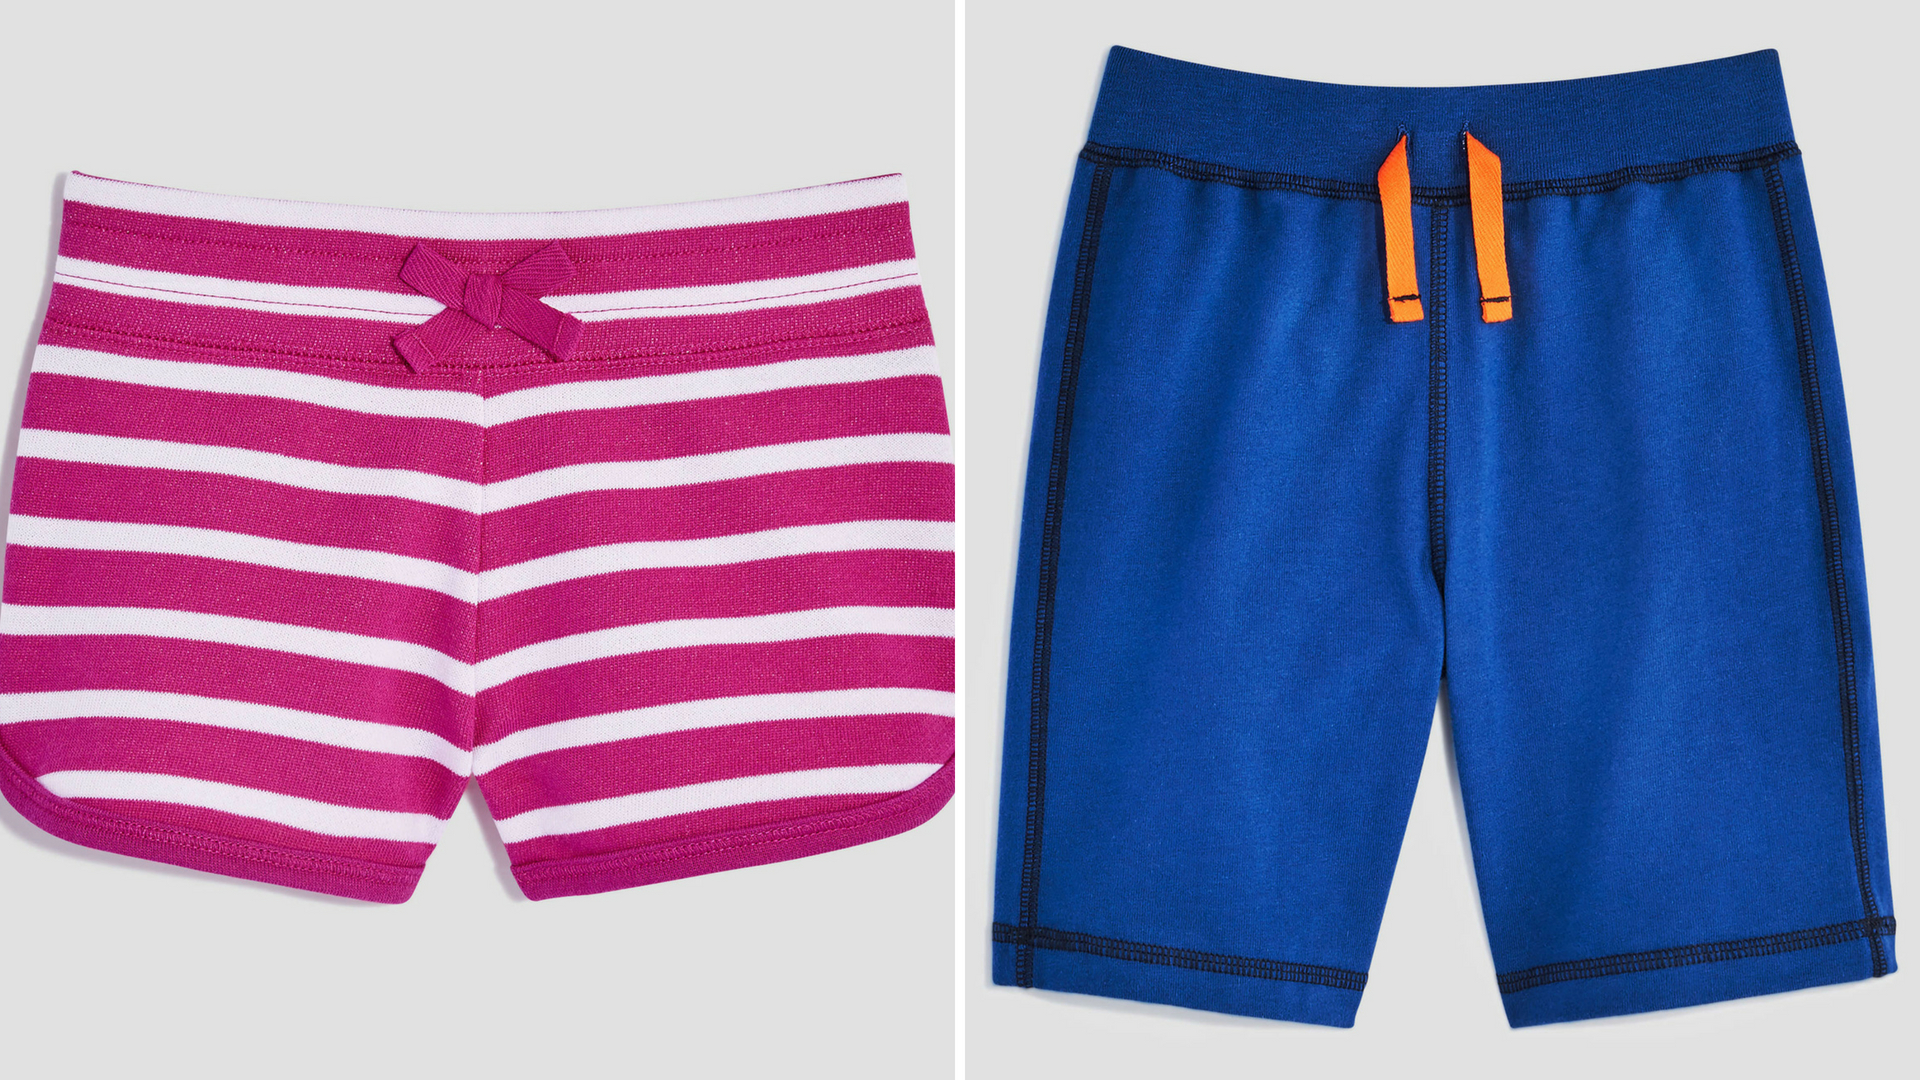 Toddler girl shorts and toddler boy shorts currently for sale at Joe